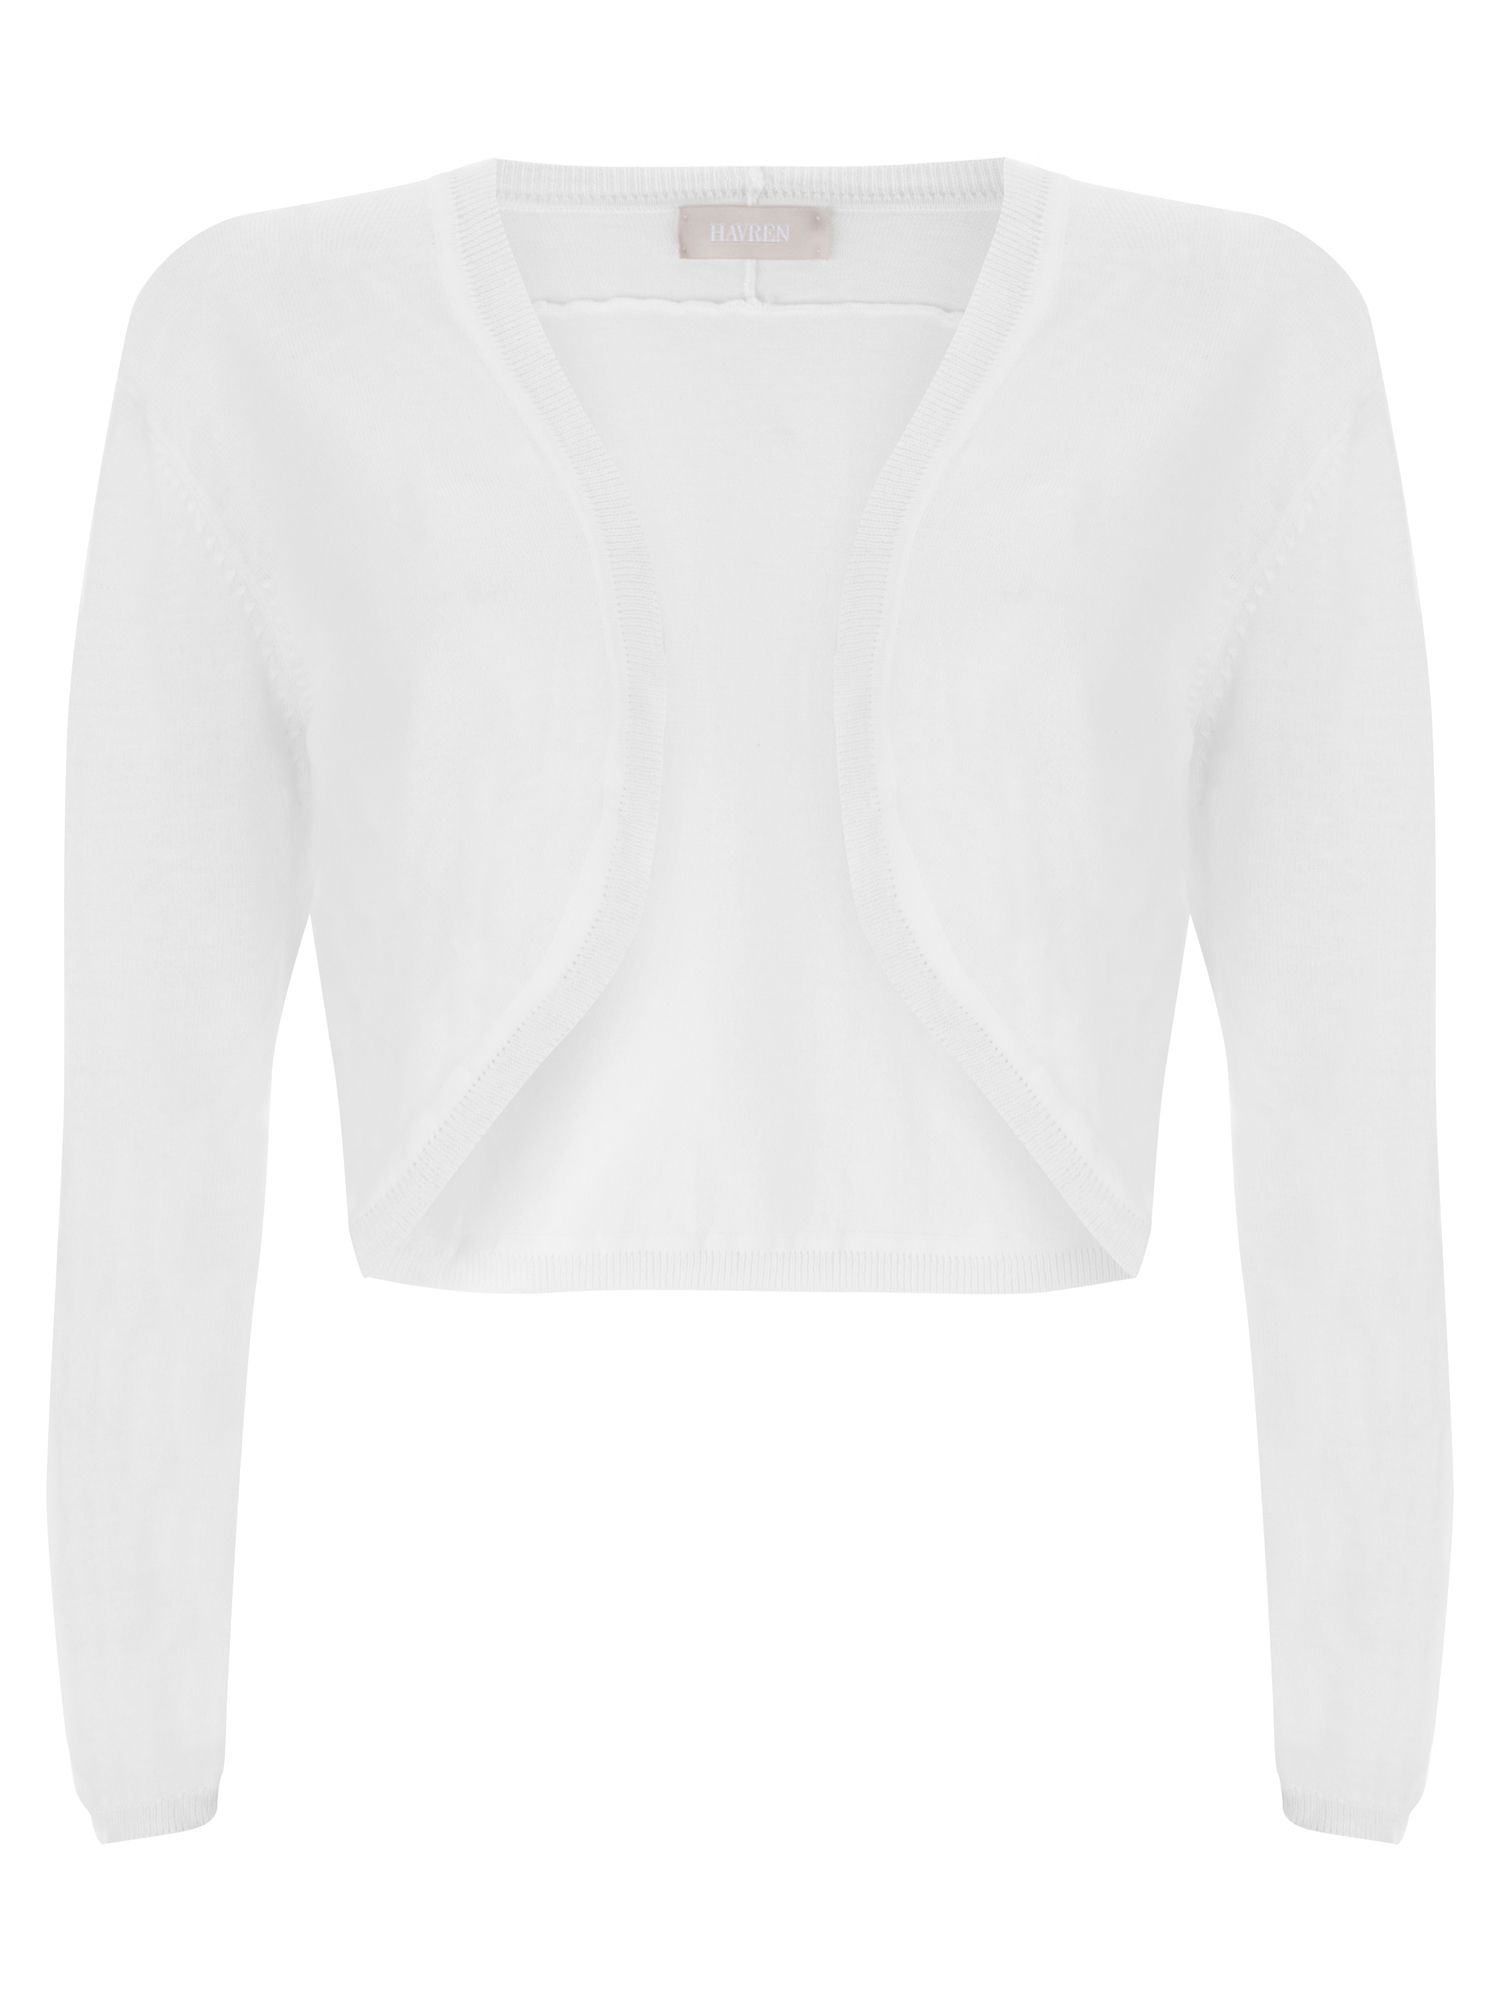 Havren Bella Shrug White